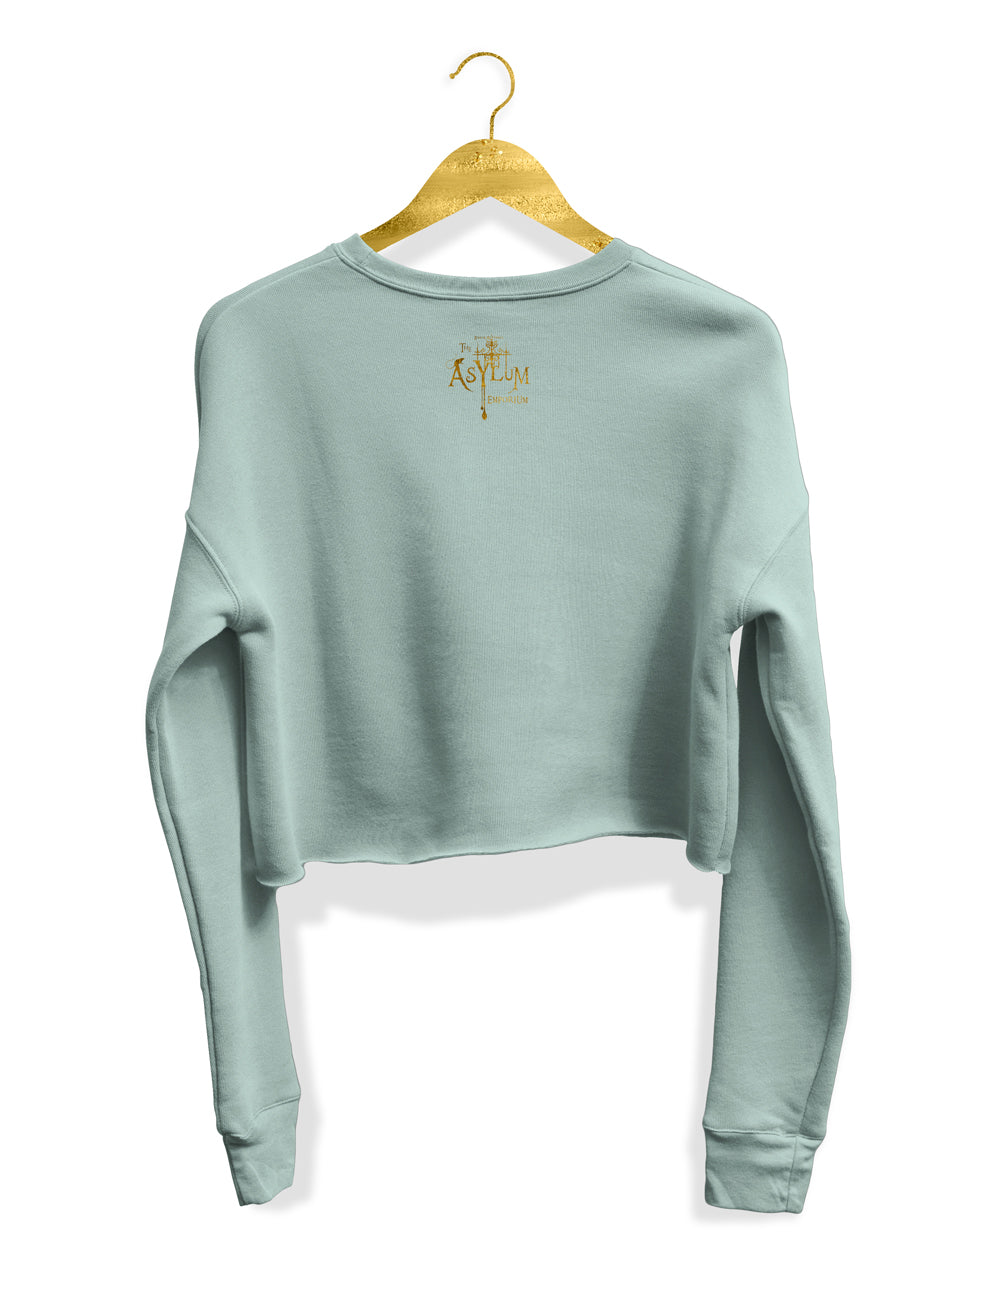 Royal Garden Cropped Sweatshirt - The Asylum Emporium